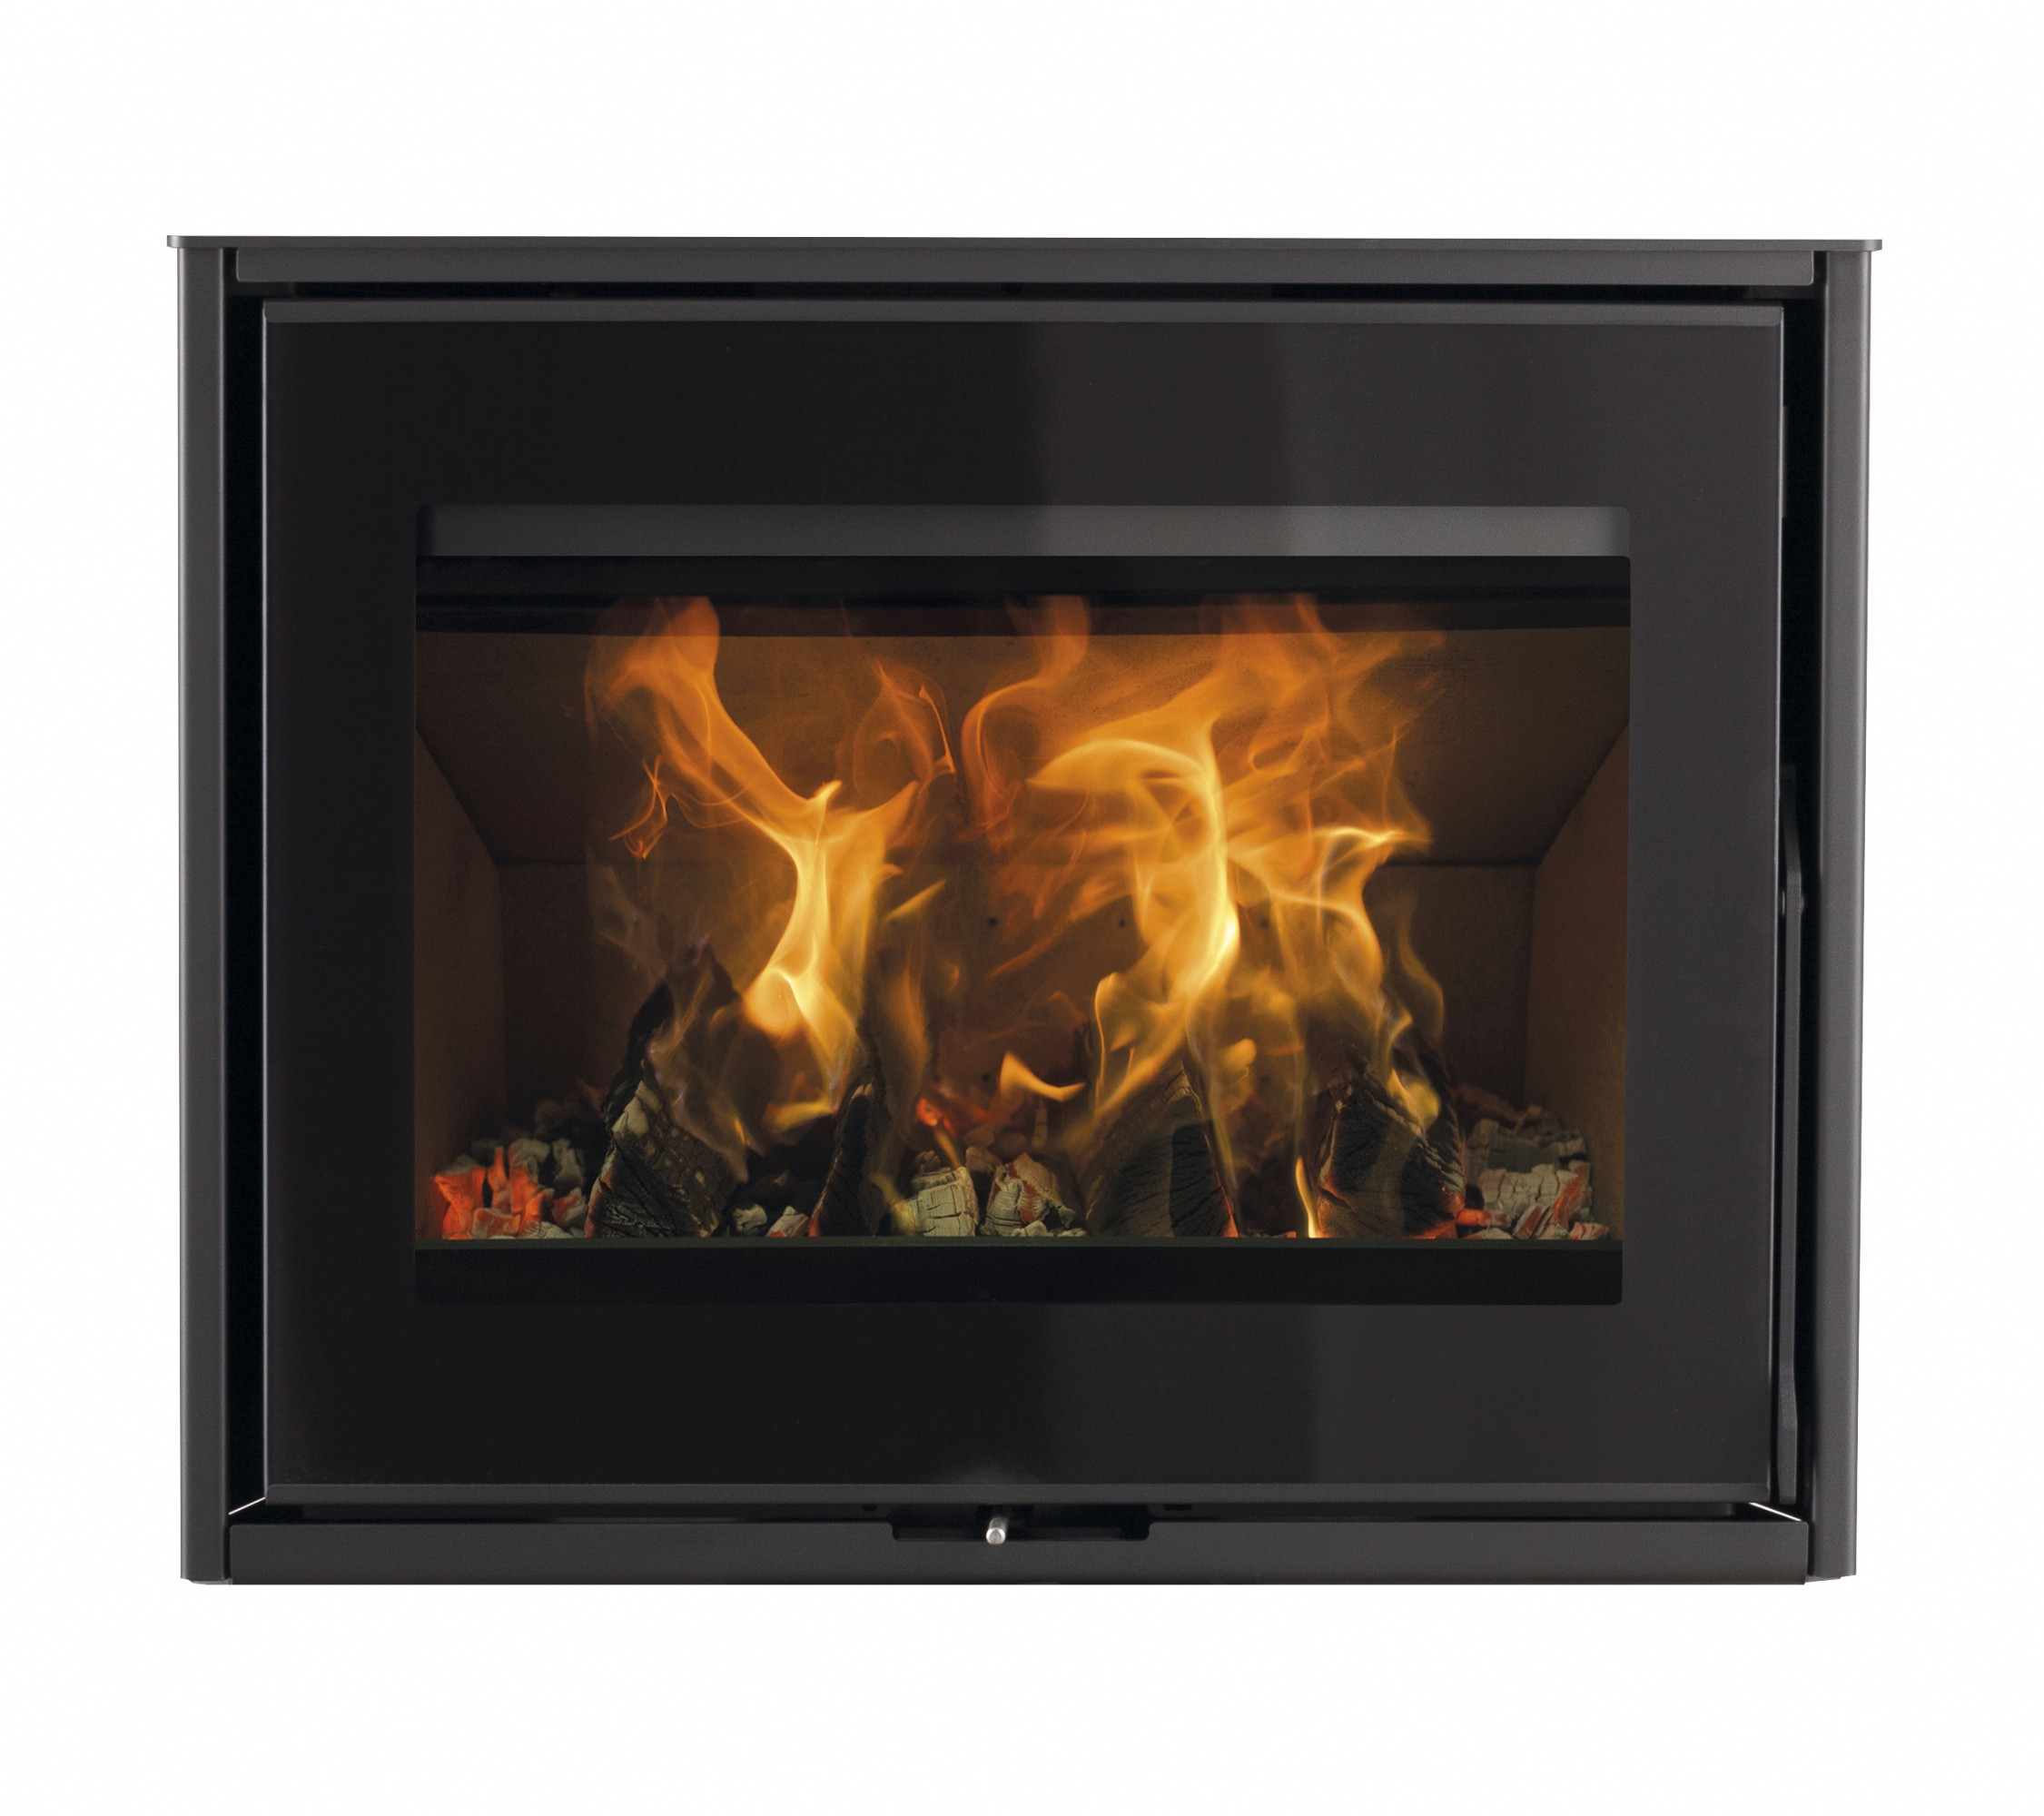 Heta Scan-Line 95 6.5kW Woodburning Stove